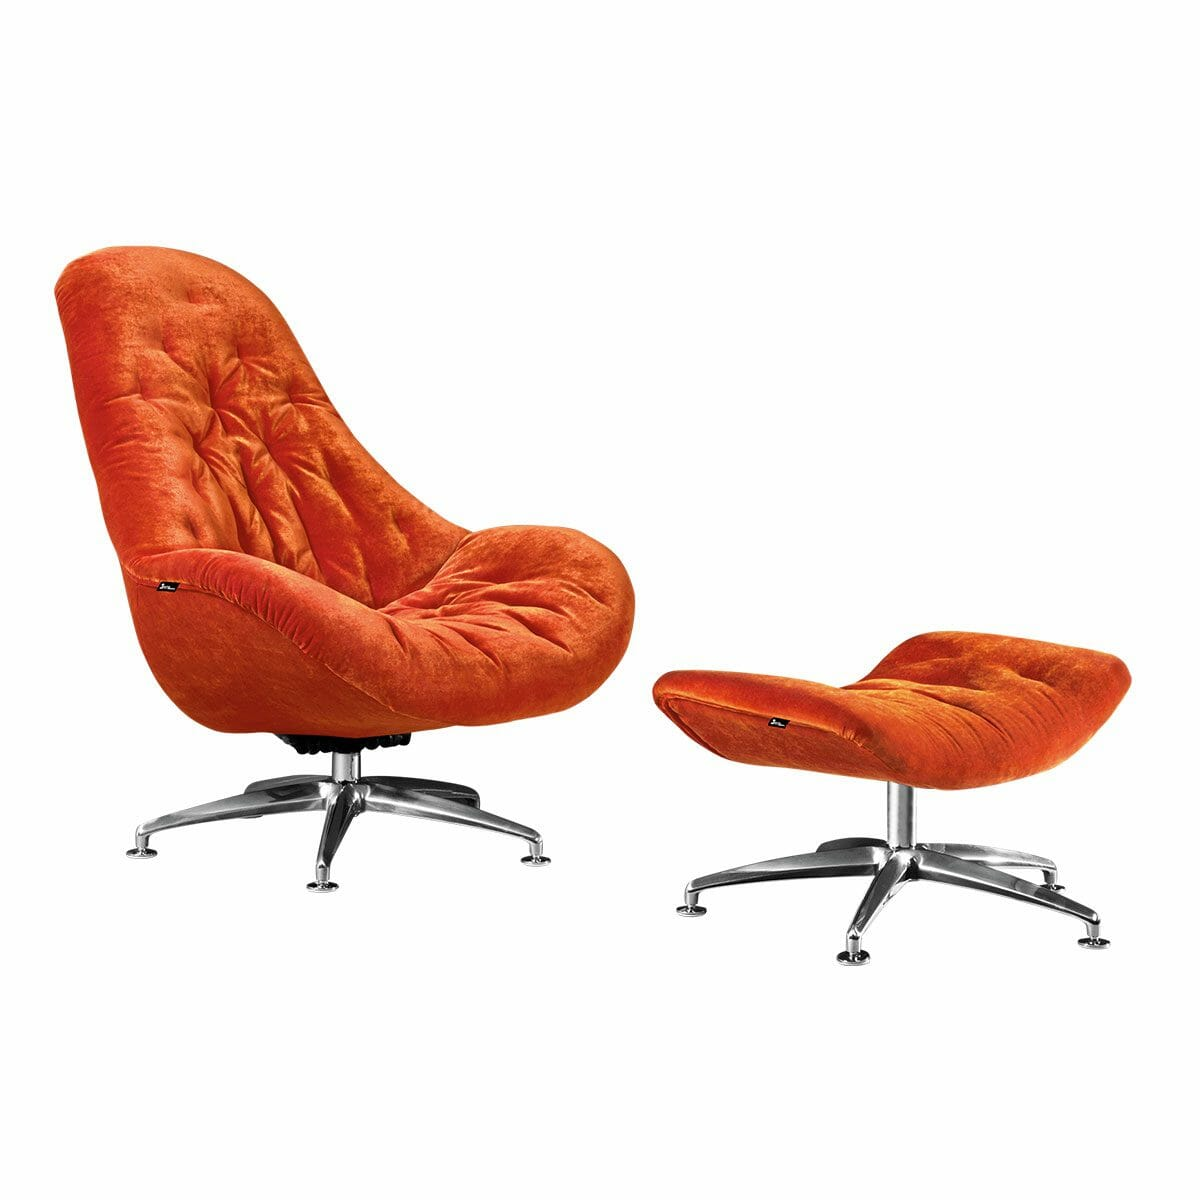 Bretz Drehsessel MATILDA B116 inkl. Hocker in kupfer-orange